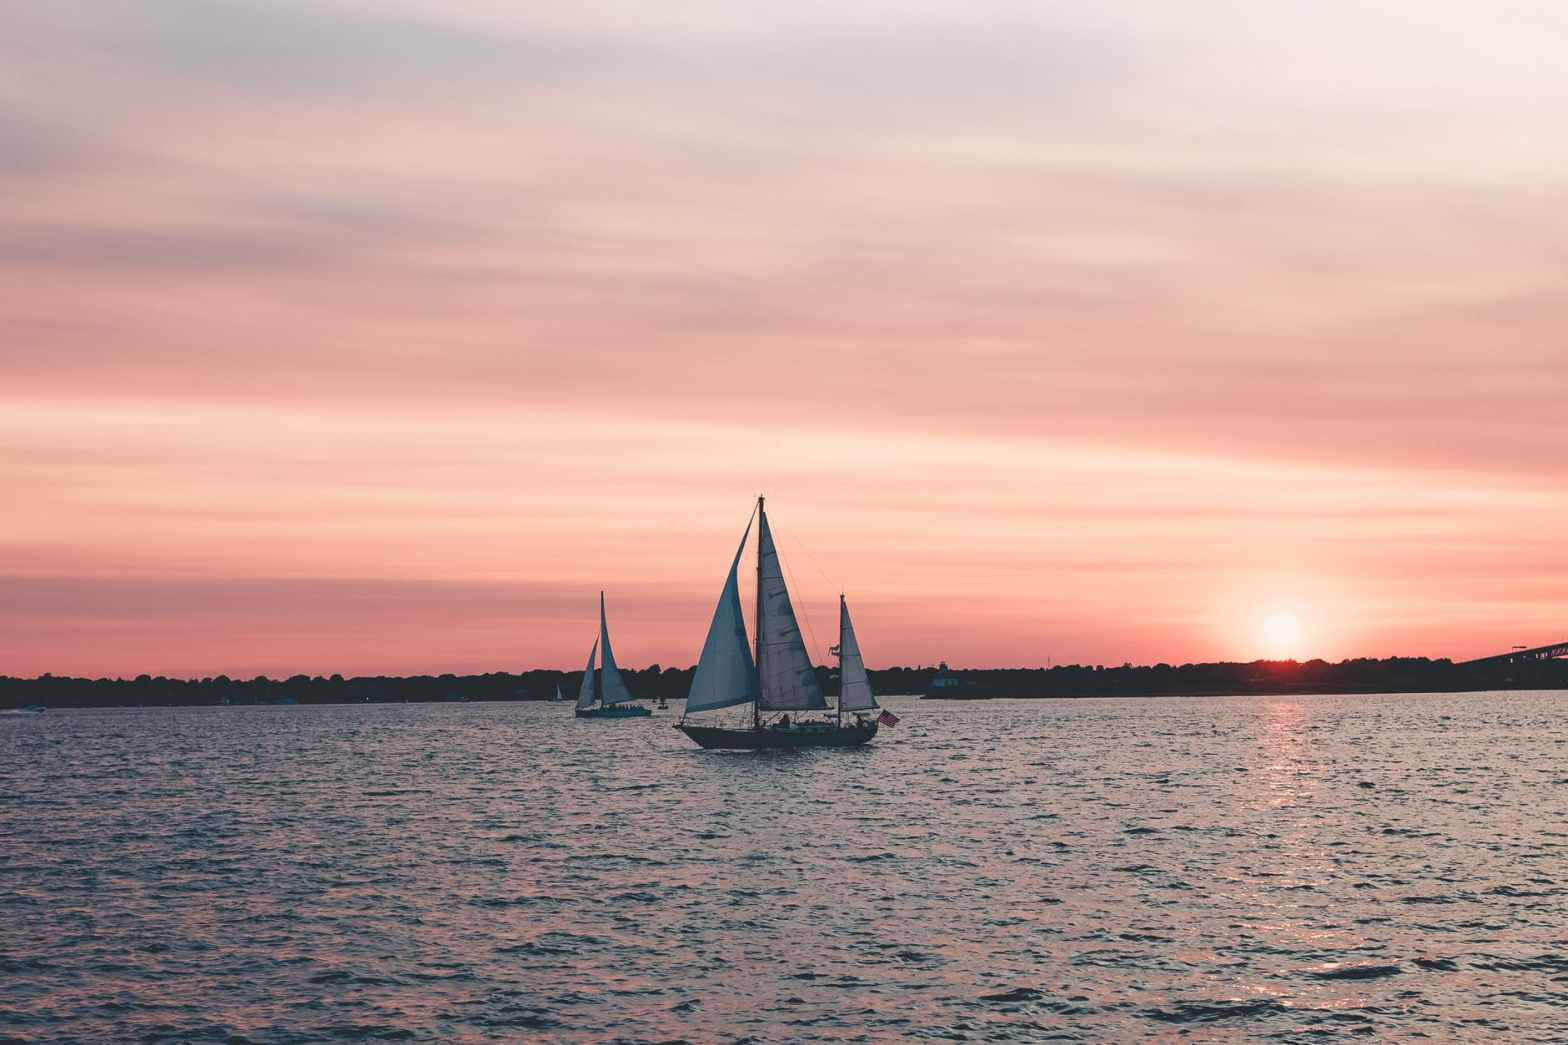 two white sailboats on body of water